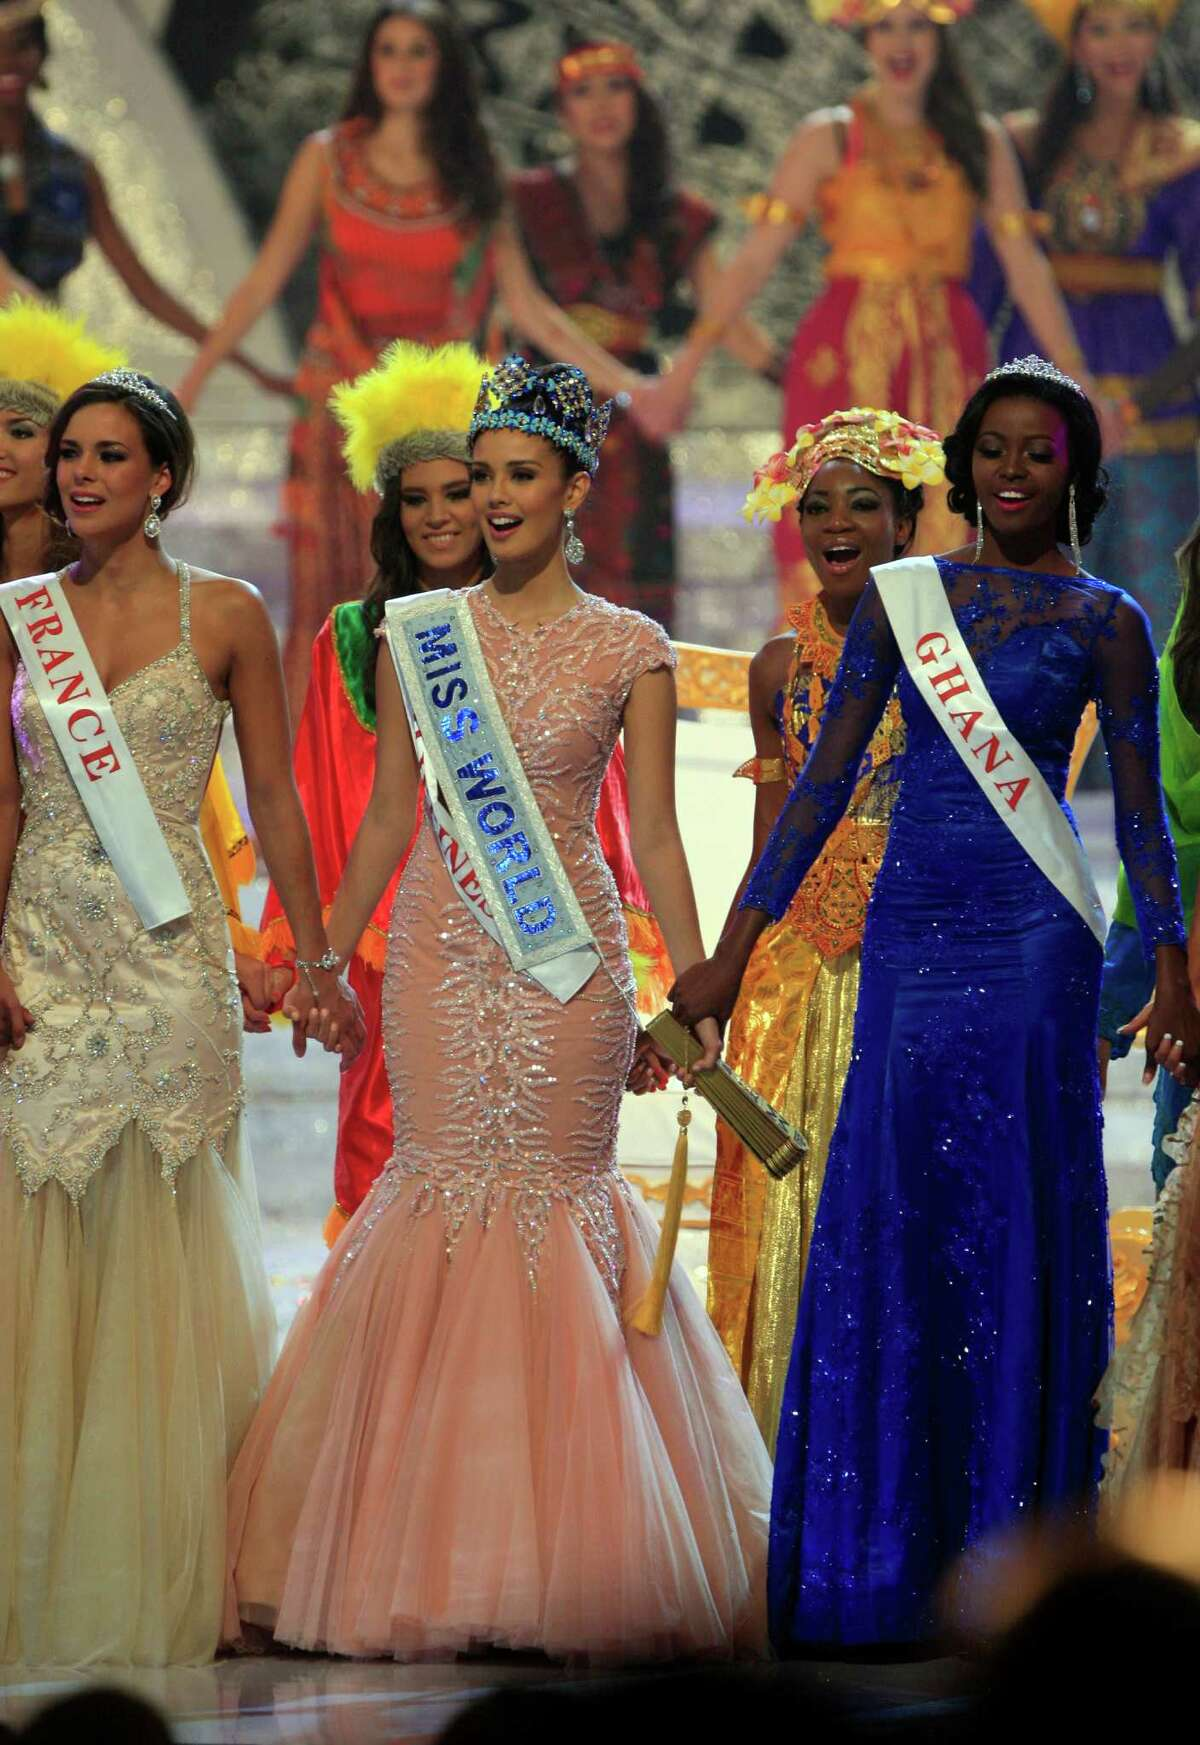 Newly crowned Miss World 2013 Megan Young of the Philippines, center, hold hands with second runner-up Miss France Marine Lorpheline, left, and third runner-up Miss Ghana Carranza Naa Okailey Shooter, right, during the grand final of the pageant in Nusa Dua, Bali, Indonesia, Saturday, Sept. 28, 2013. Miss Philippines, Megan Young, was crowned Miss World on Saturday amid tight security on Indonesia's resort island of Bali, where the contest's final round was moved following protests by Muslim hardliner groups.